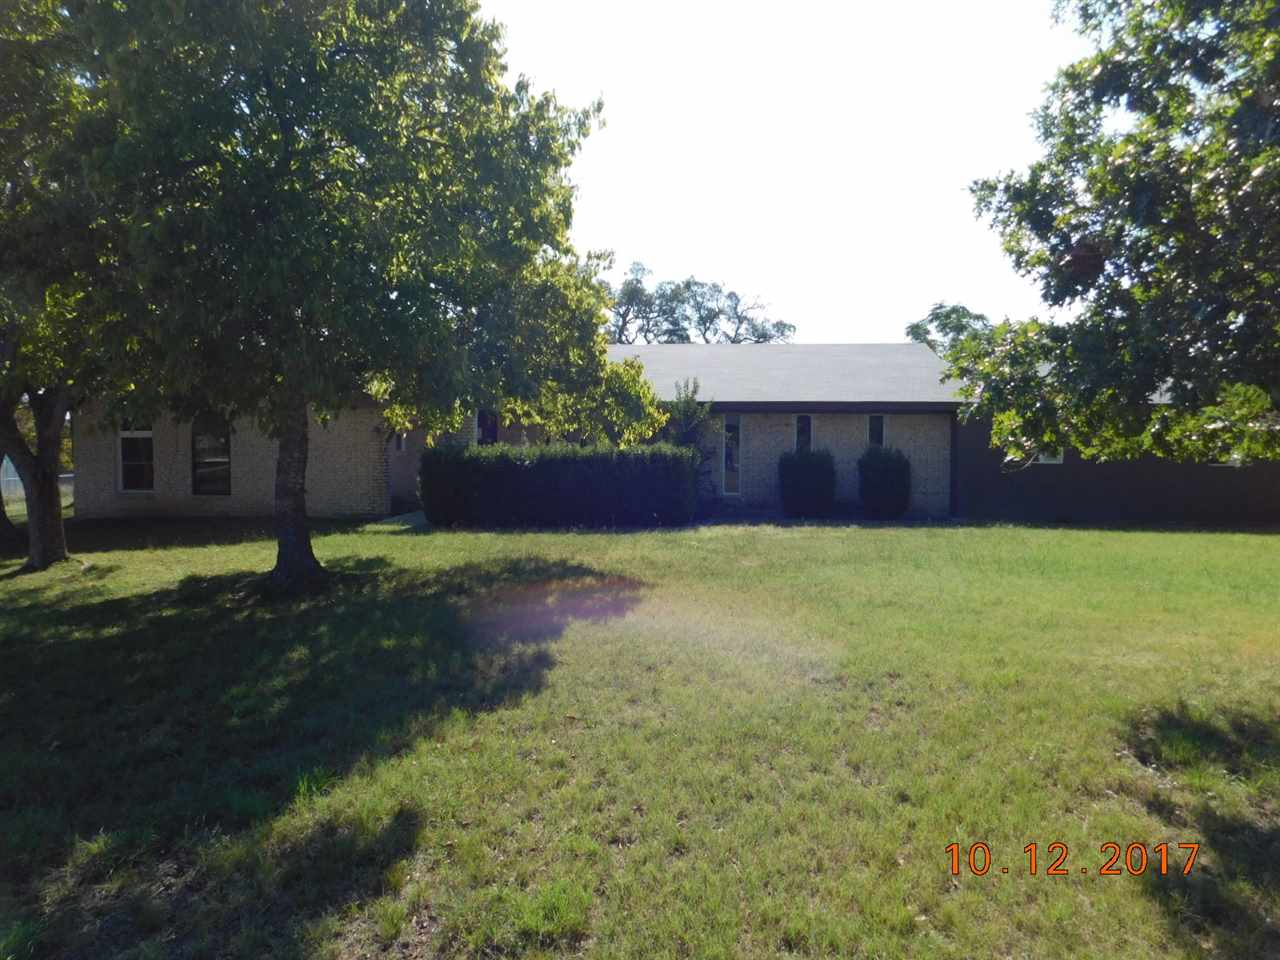 Single Family Home for Sale at 770 CR 4756 770 CR 4756 Kempner, Texas 76539 United States